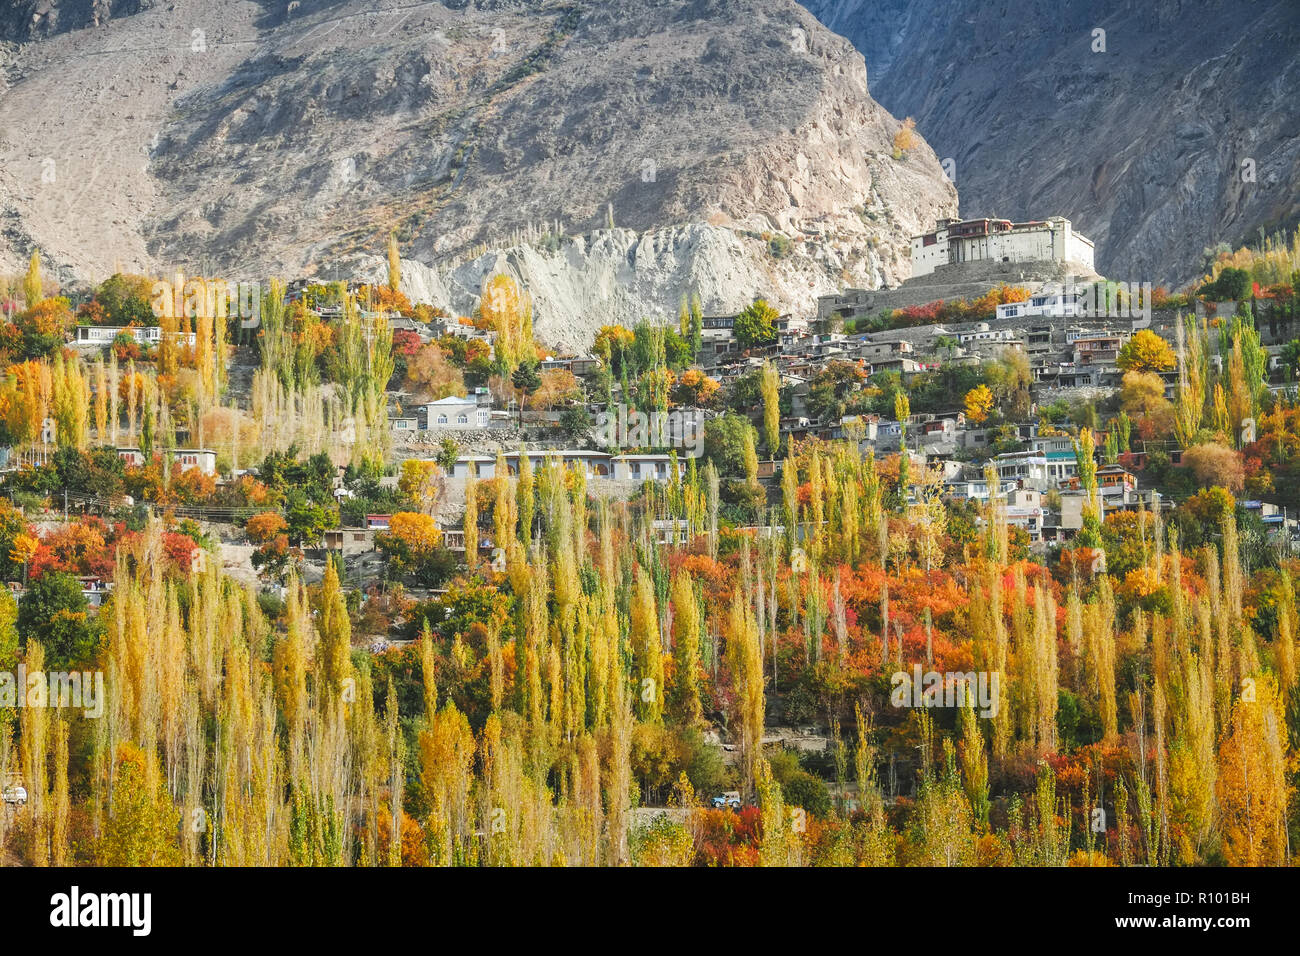 Baltit fort in autumn. Karimabad, Hunza valley, Pakistan. - Stock Image